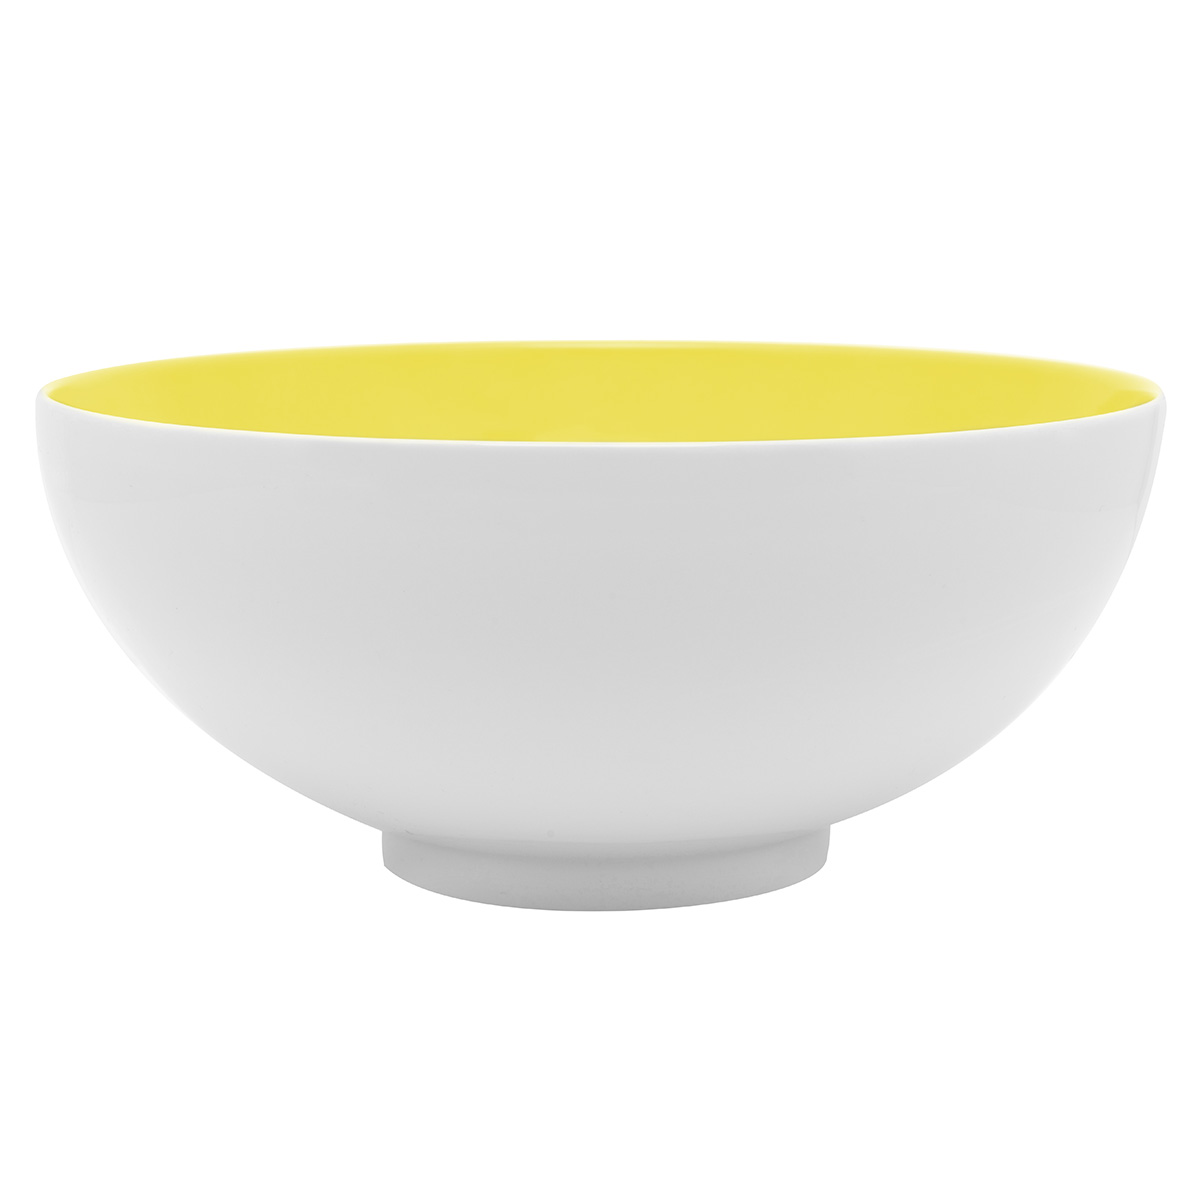 Modulo color lime plat a tarte rond 32 cm cuisson la - La table parisienne angouleme ...